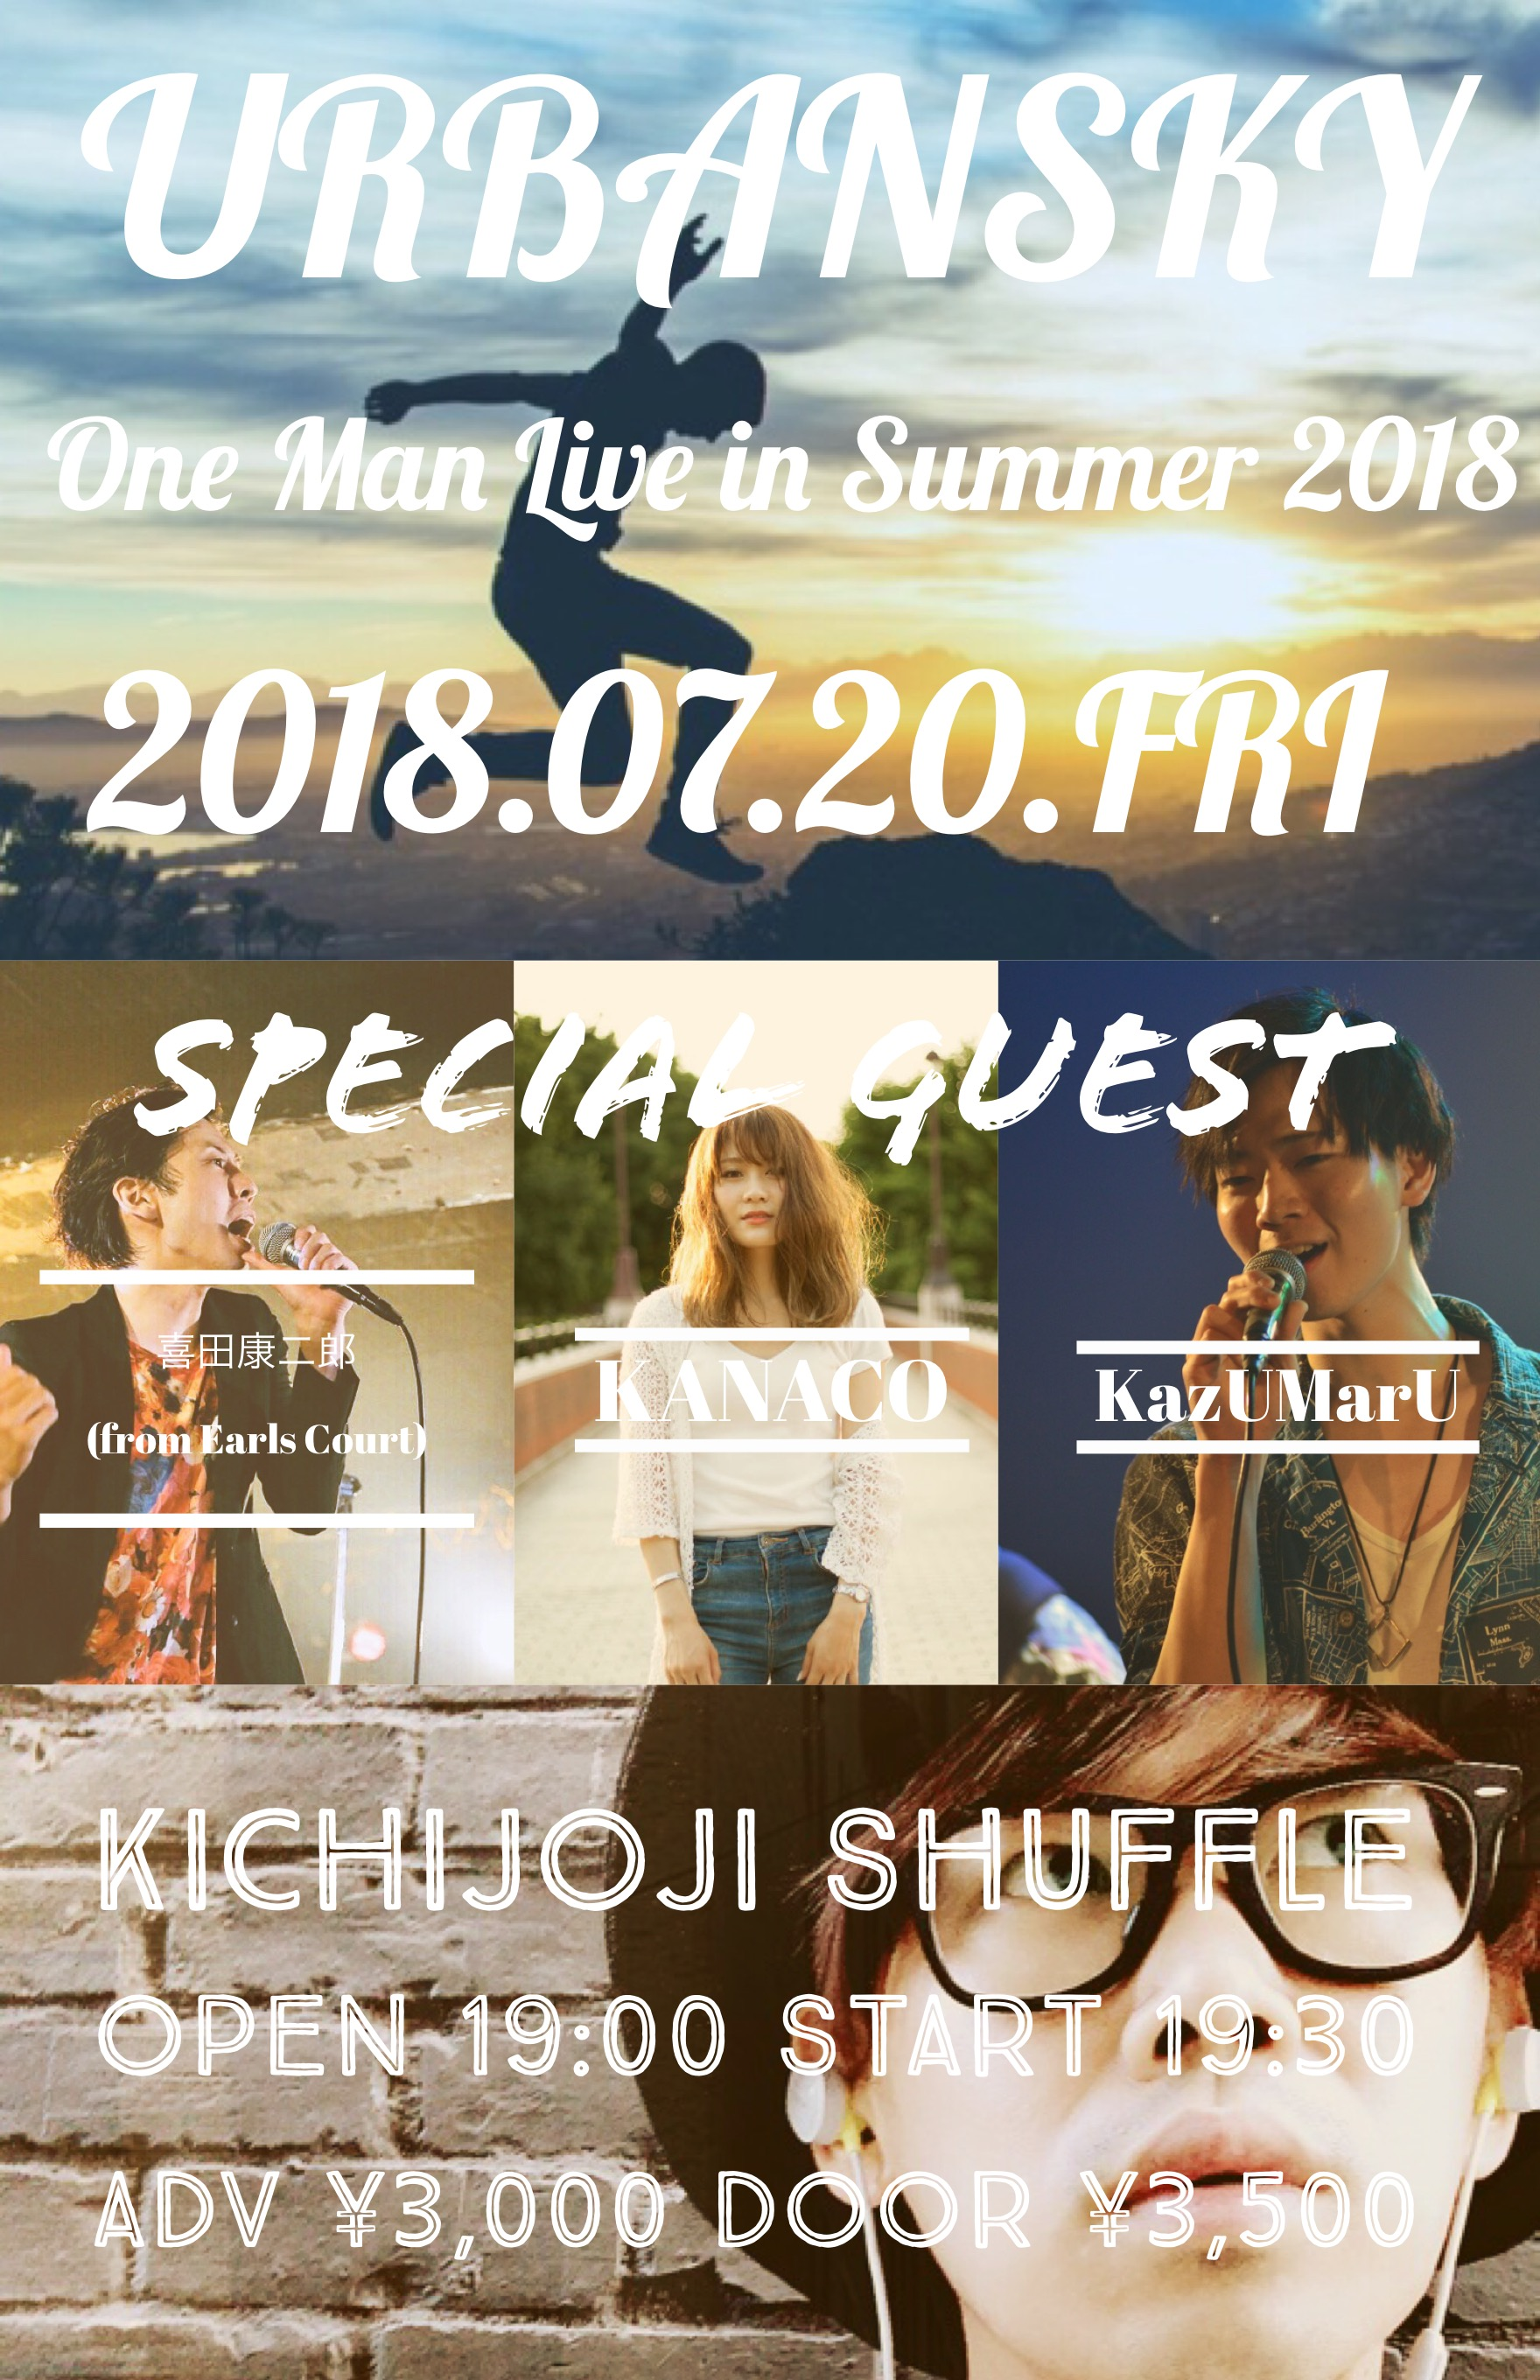 URBANSKY One Man Live in Summer 2018